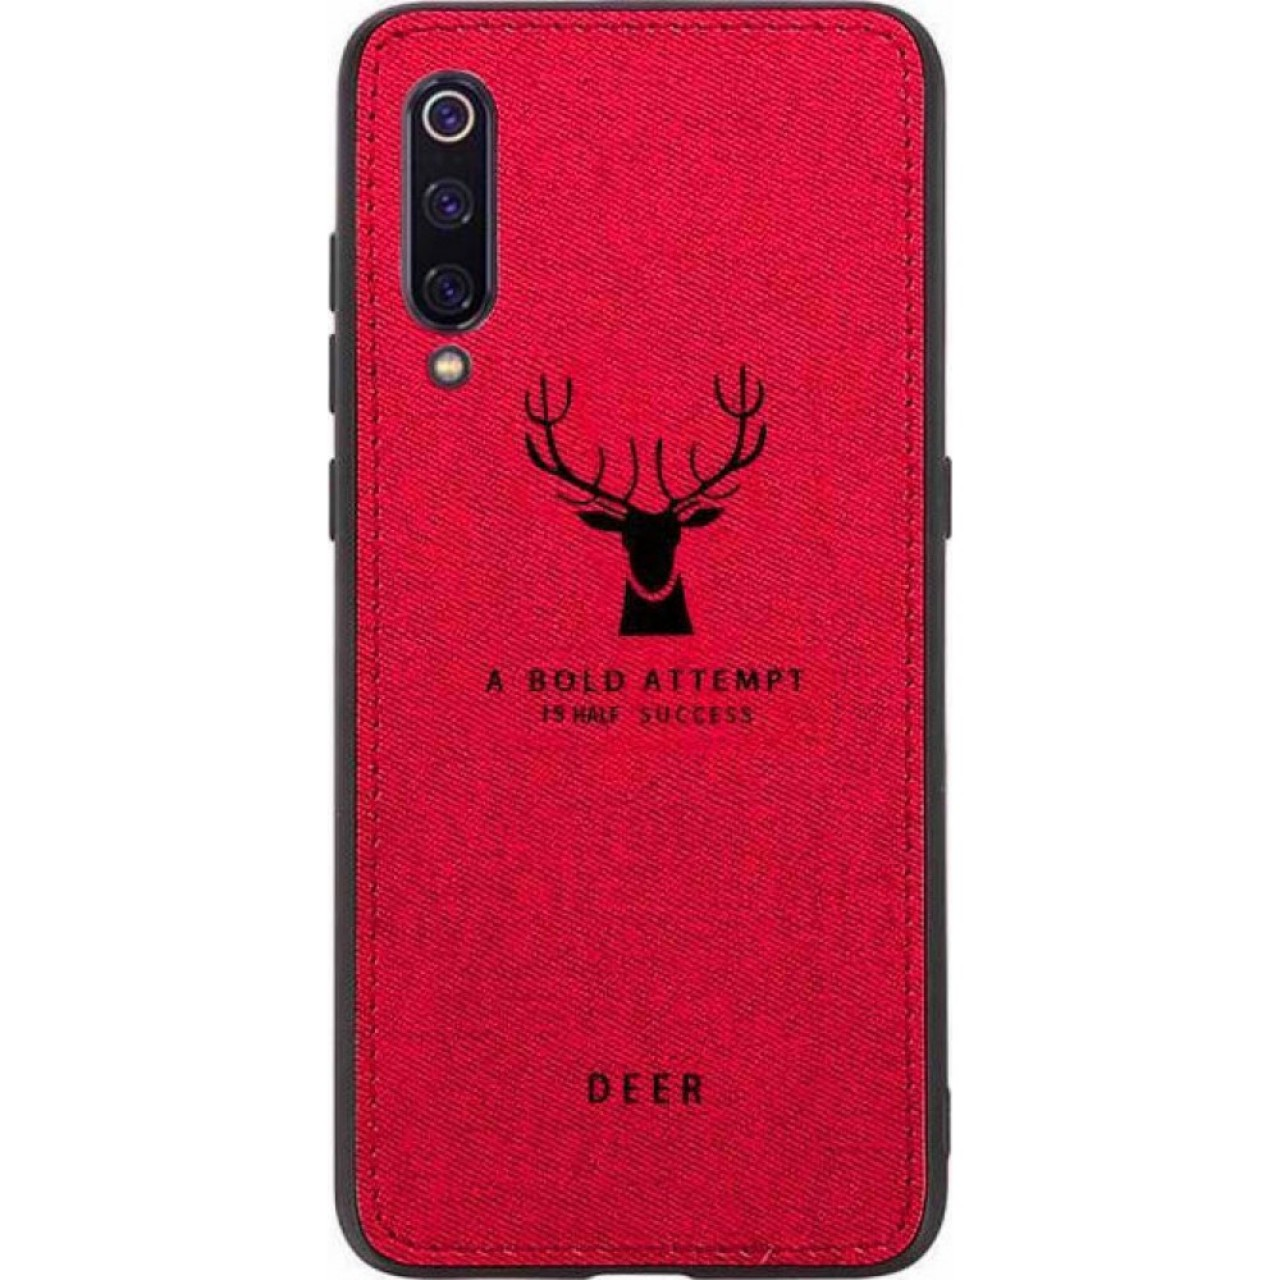 DEER CLOTH BACK CASE FOR SAMSUNG GALAXY A30s - RED